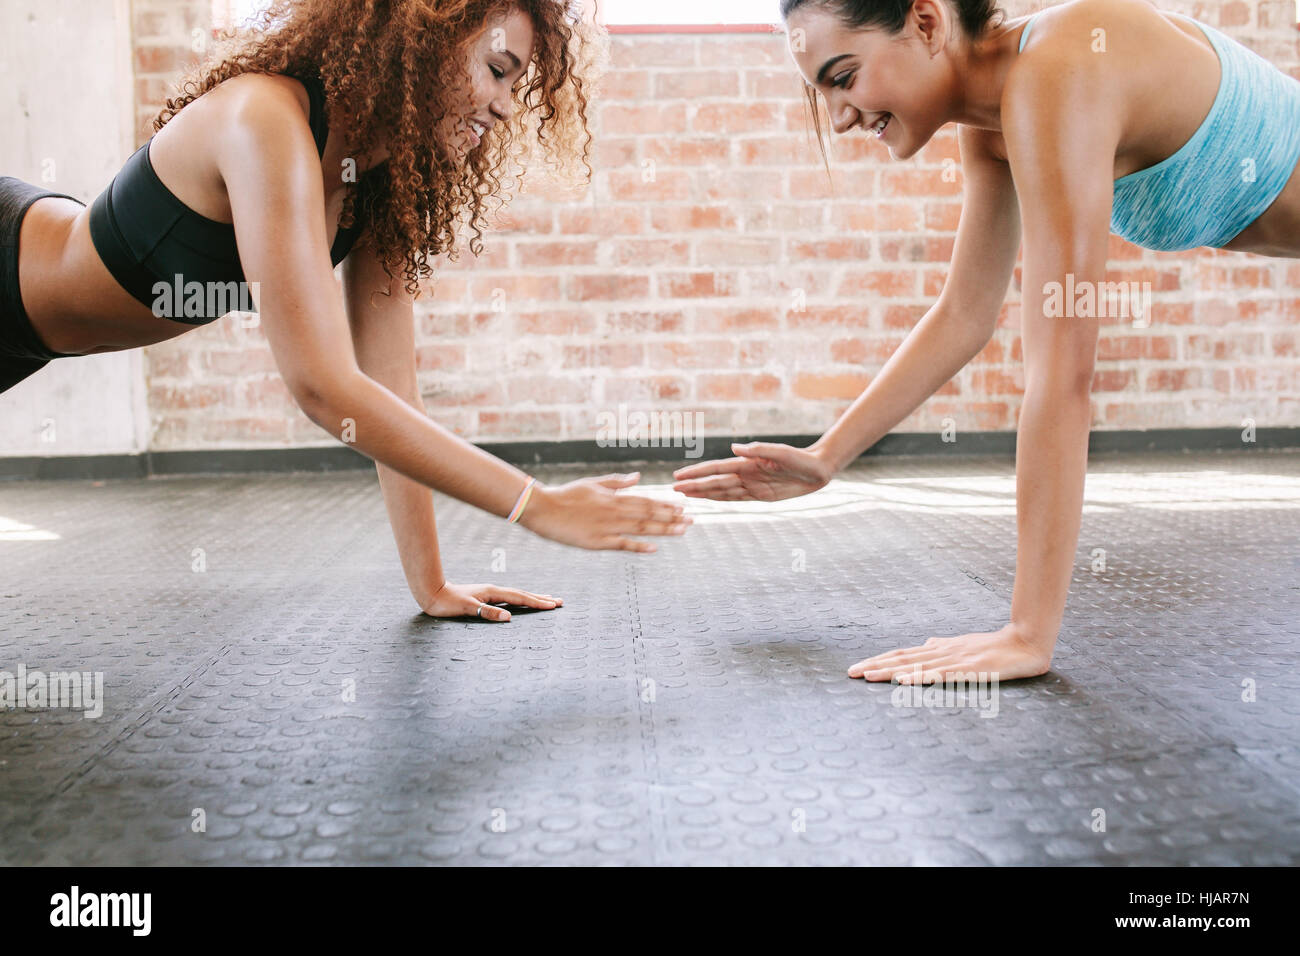 Side view shot of two young female exercising together in gym. Women doing pushups together. - Stock Image